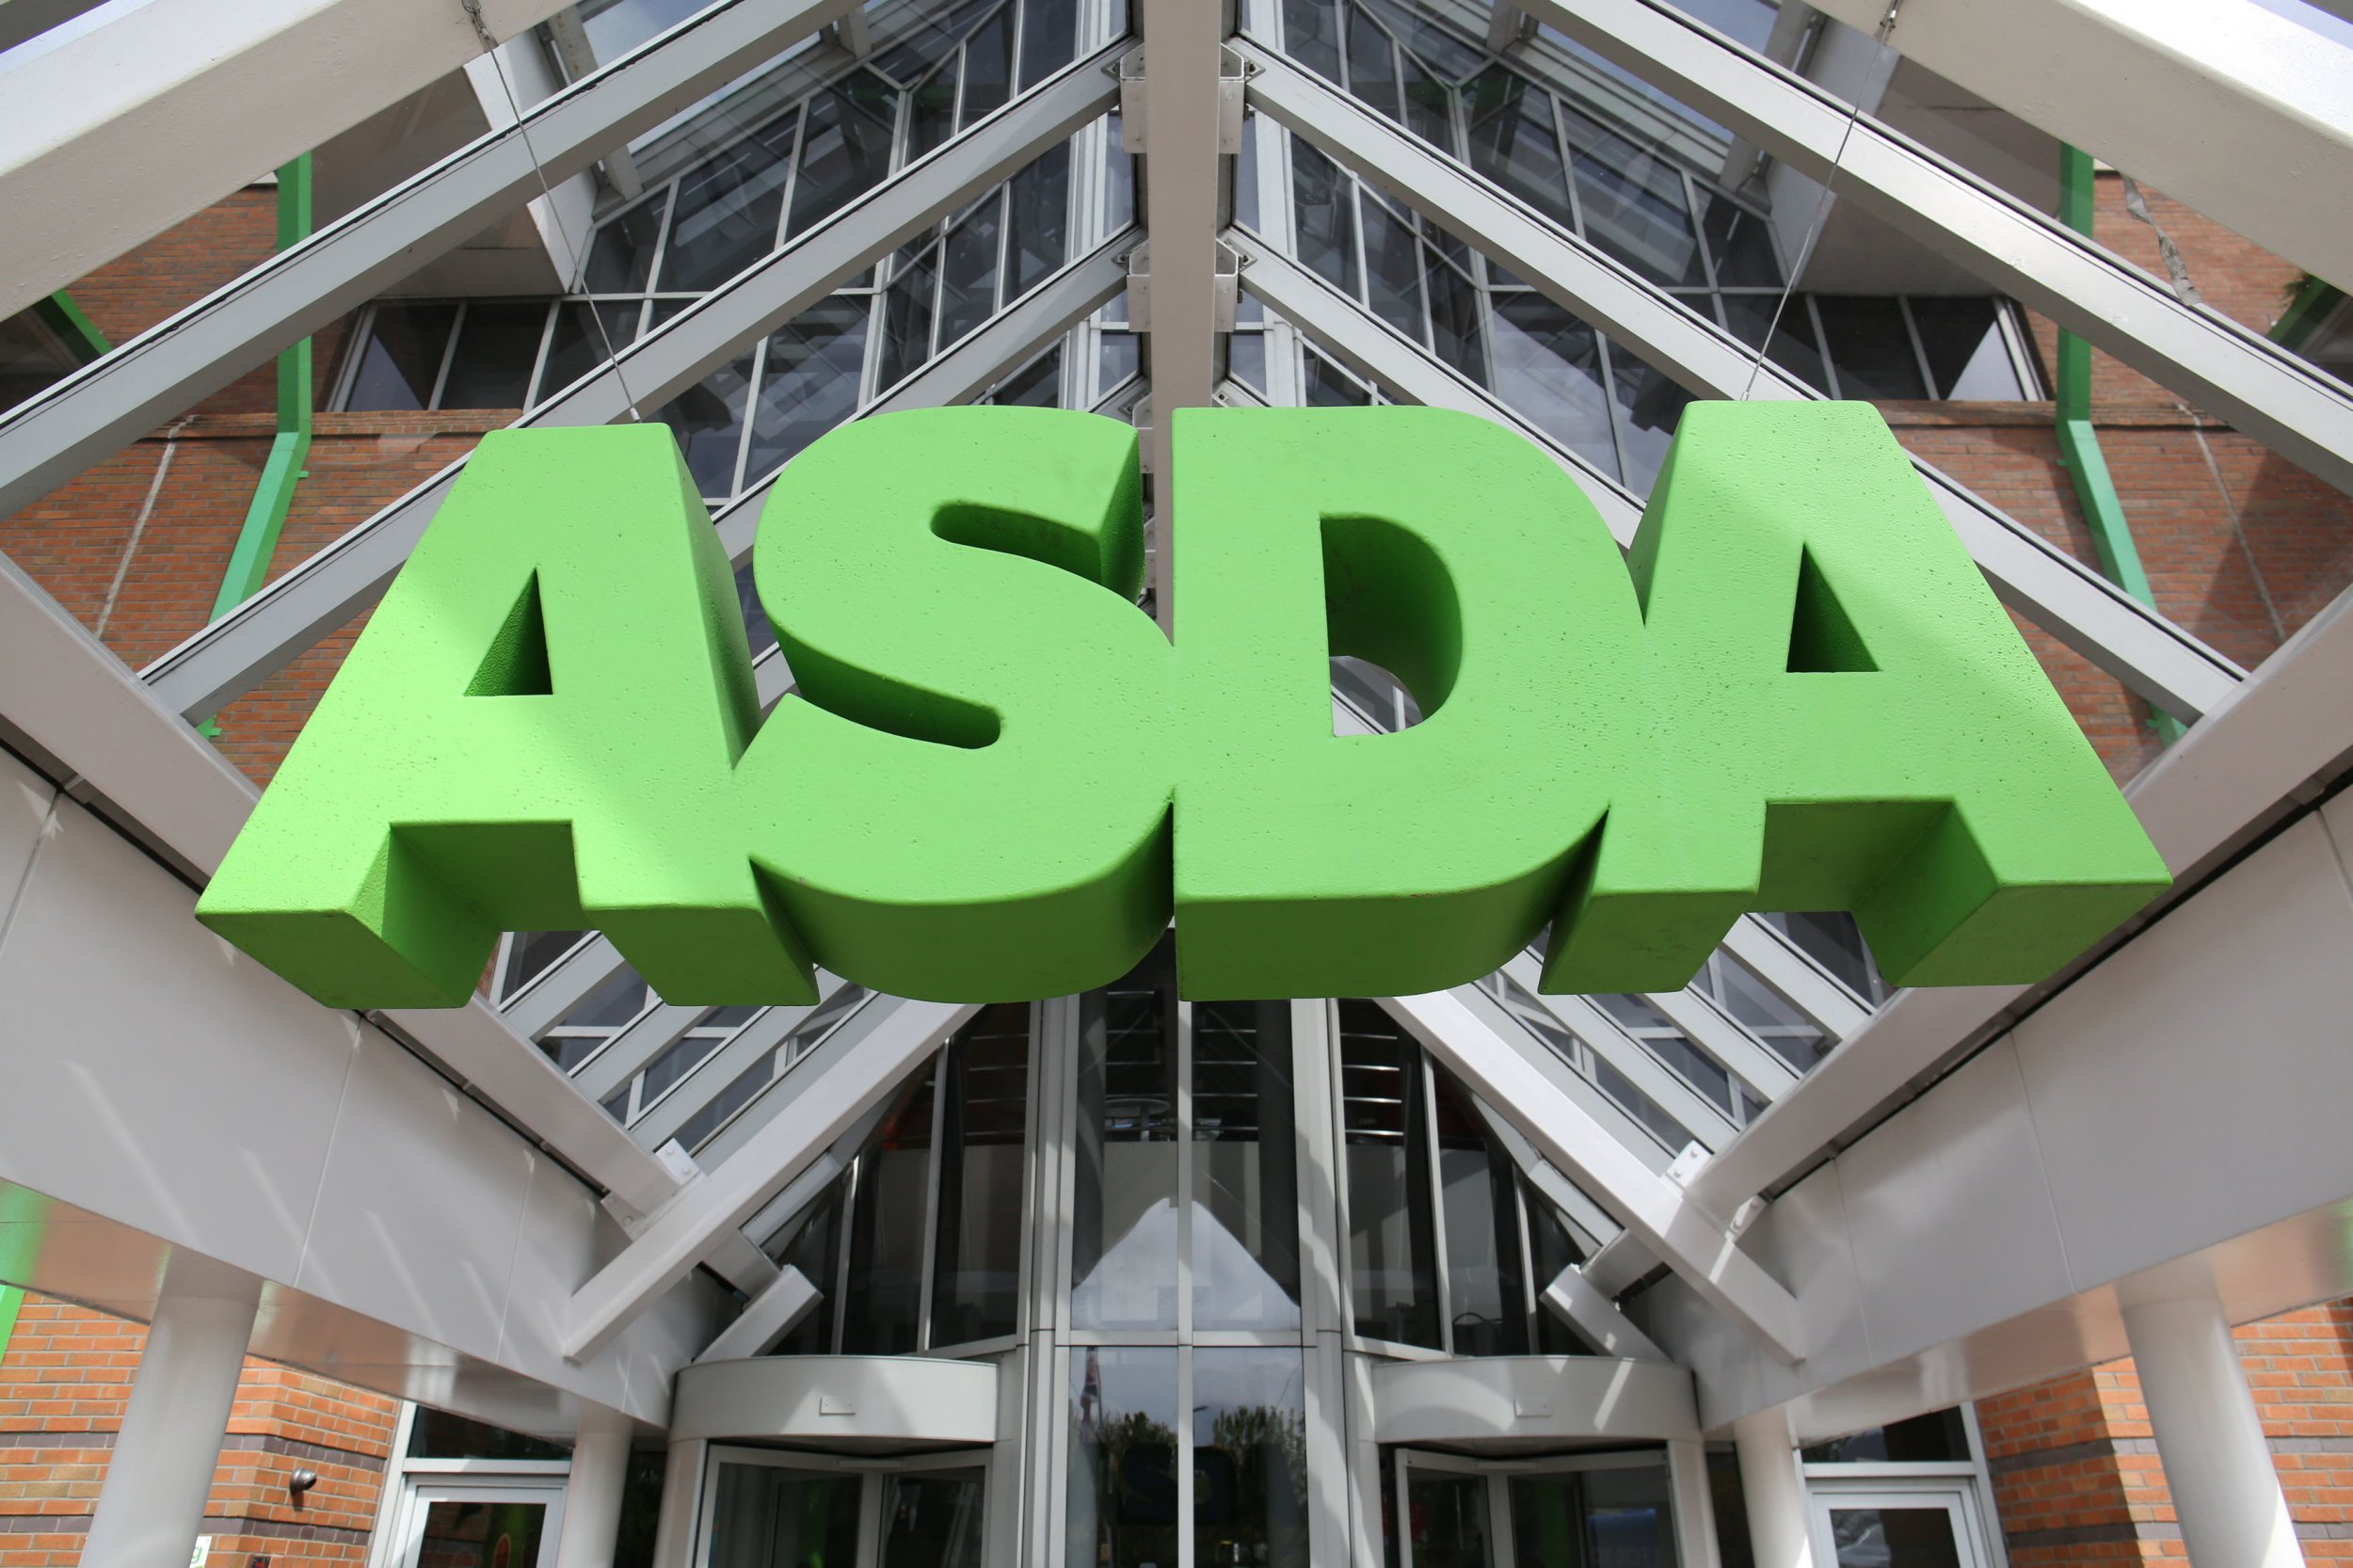 File photo dated 01/05/15 of an Asda sign. Supermarket Asda is set to find out the latest ruling in a legal battle by its staff over equal pay. PRESS ASSOCIATION Photo. Issue date: Thursday January 31, 2019. The retail giant is challenging an Employment Appeal Tribunal (EAT) decision that jobs in Asda stores are comparable to those in the firm?s distribution centres. See PA story COURTS Asda. Photo credit should read: Chris Radburn/PA Wire